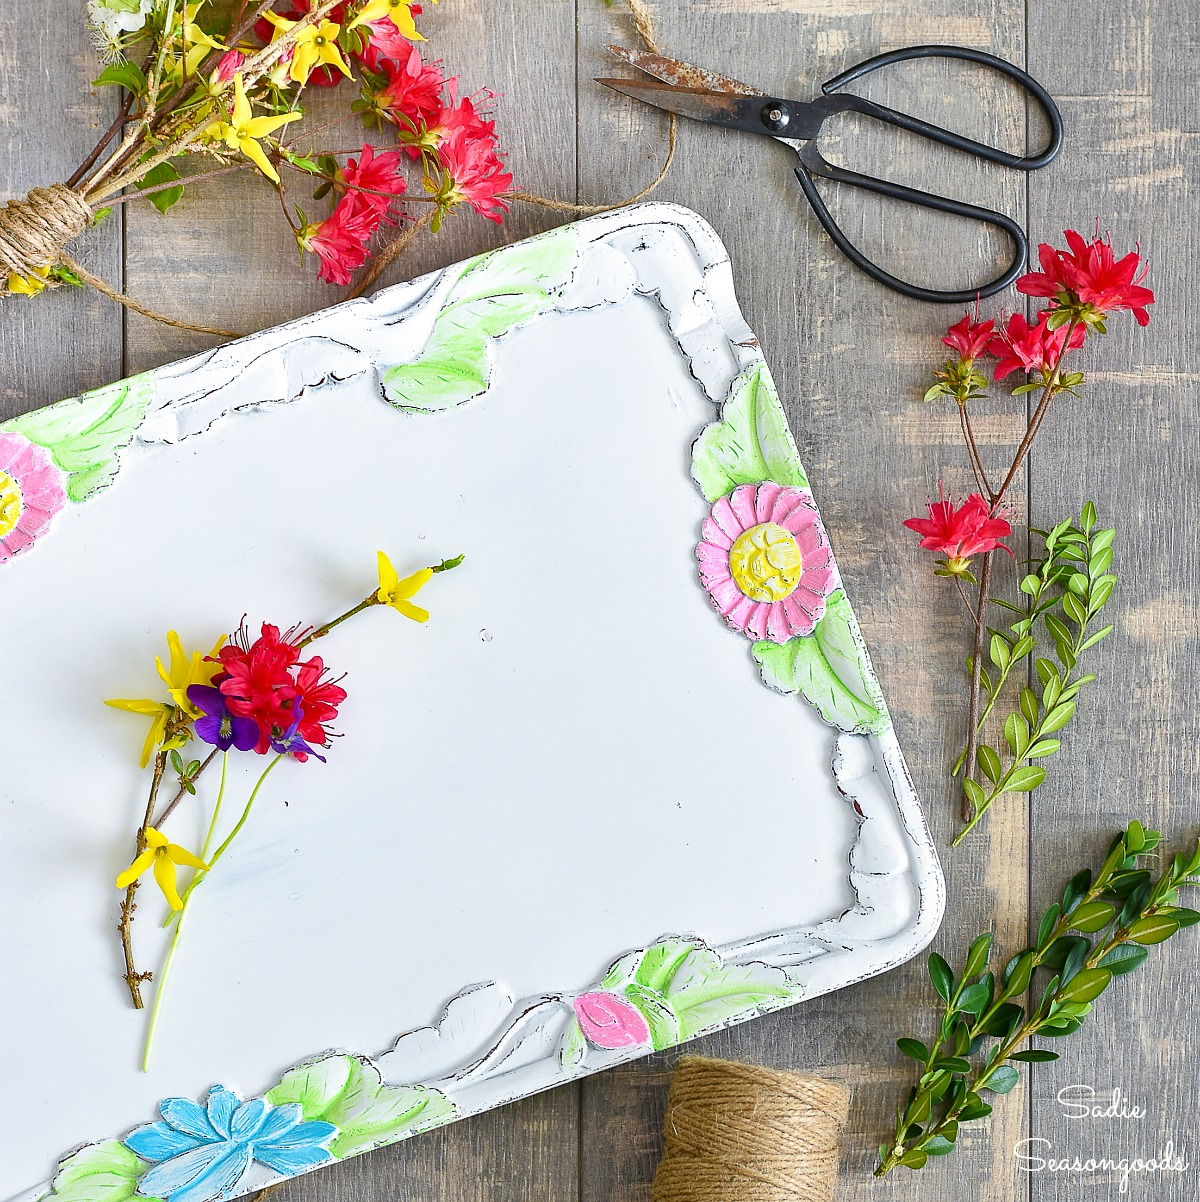 Tole Painting a Large Serving Tray for Spring Decor